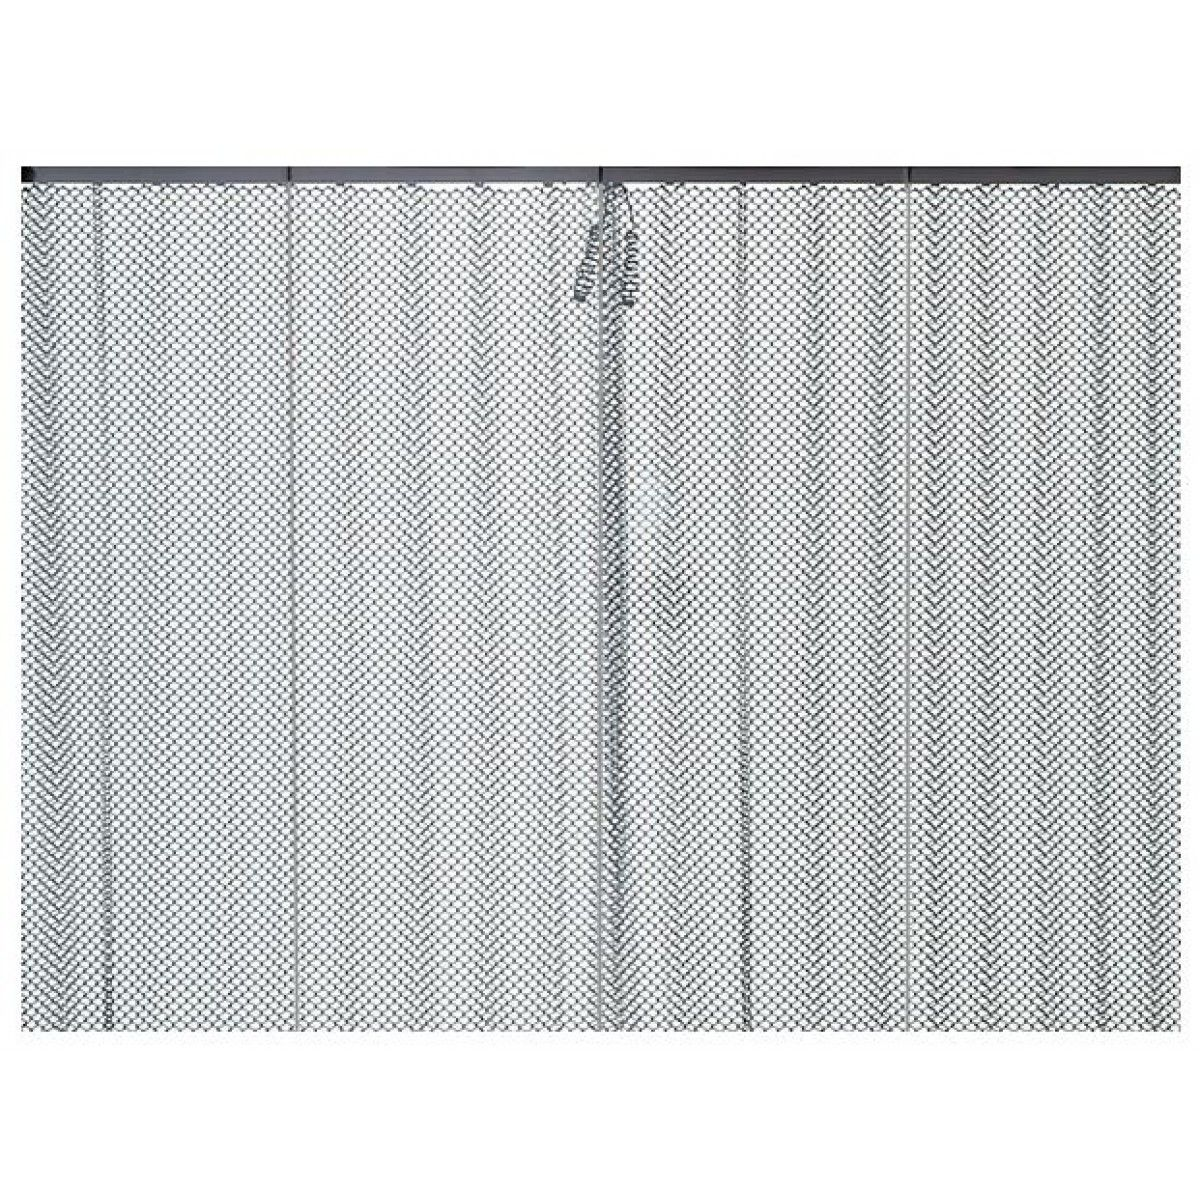 fireplace mesh doors screens and curtains which choice is